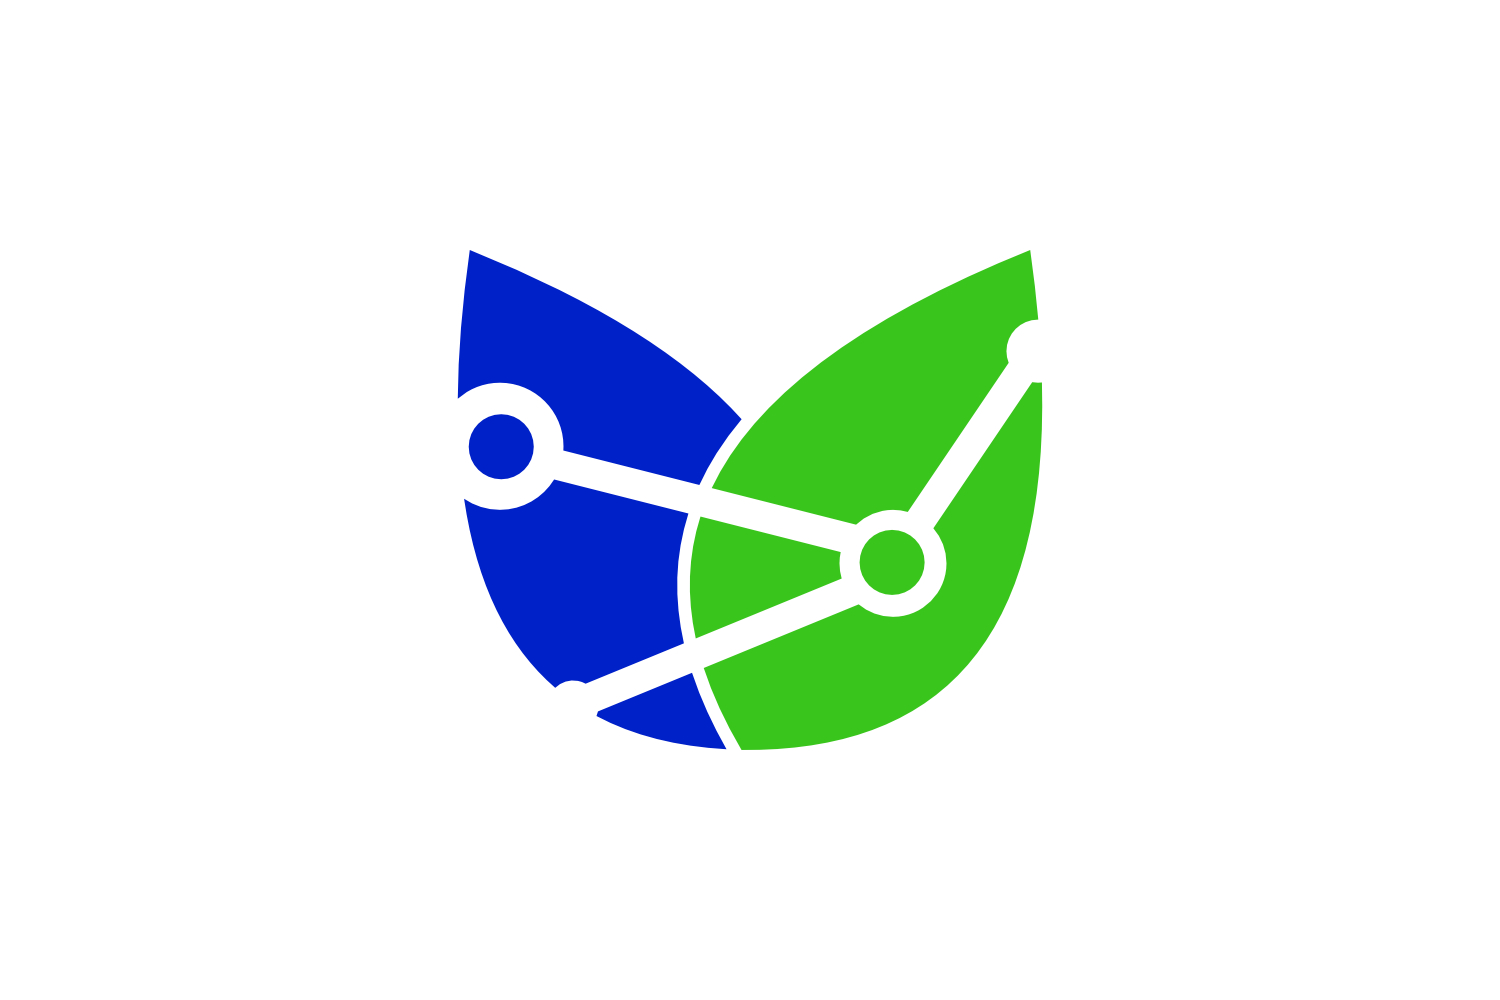 eco connection logo example image 1